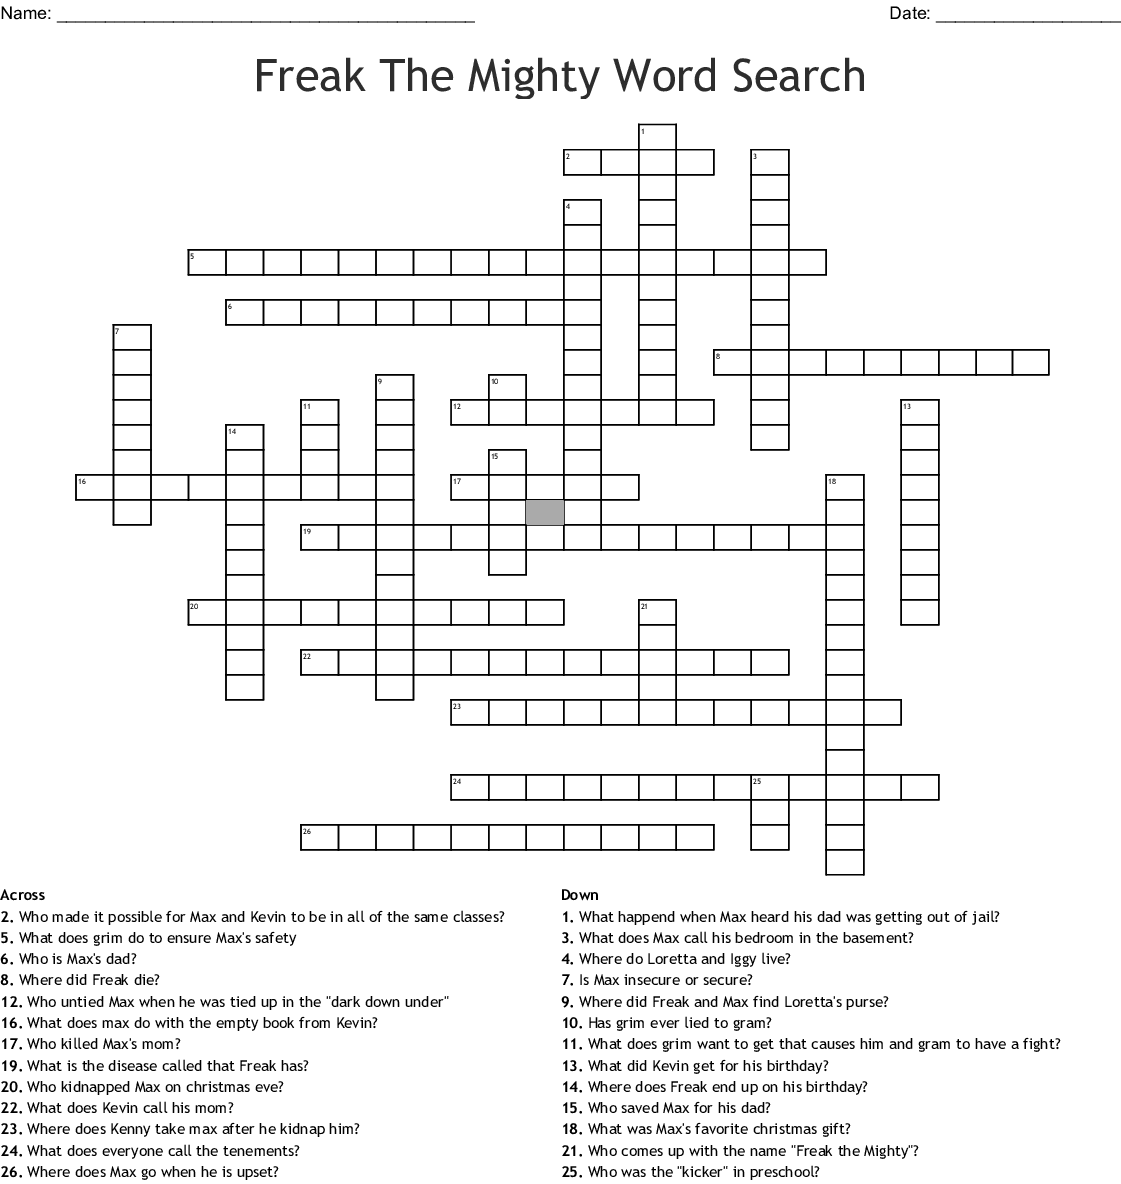 Freak The Mighty Word Search Crossword